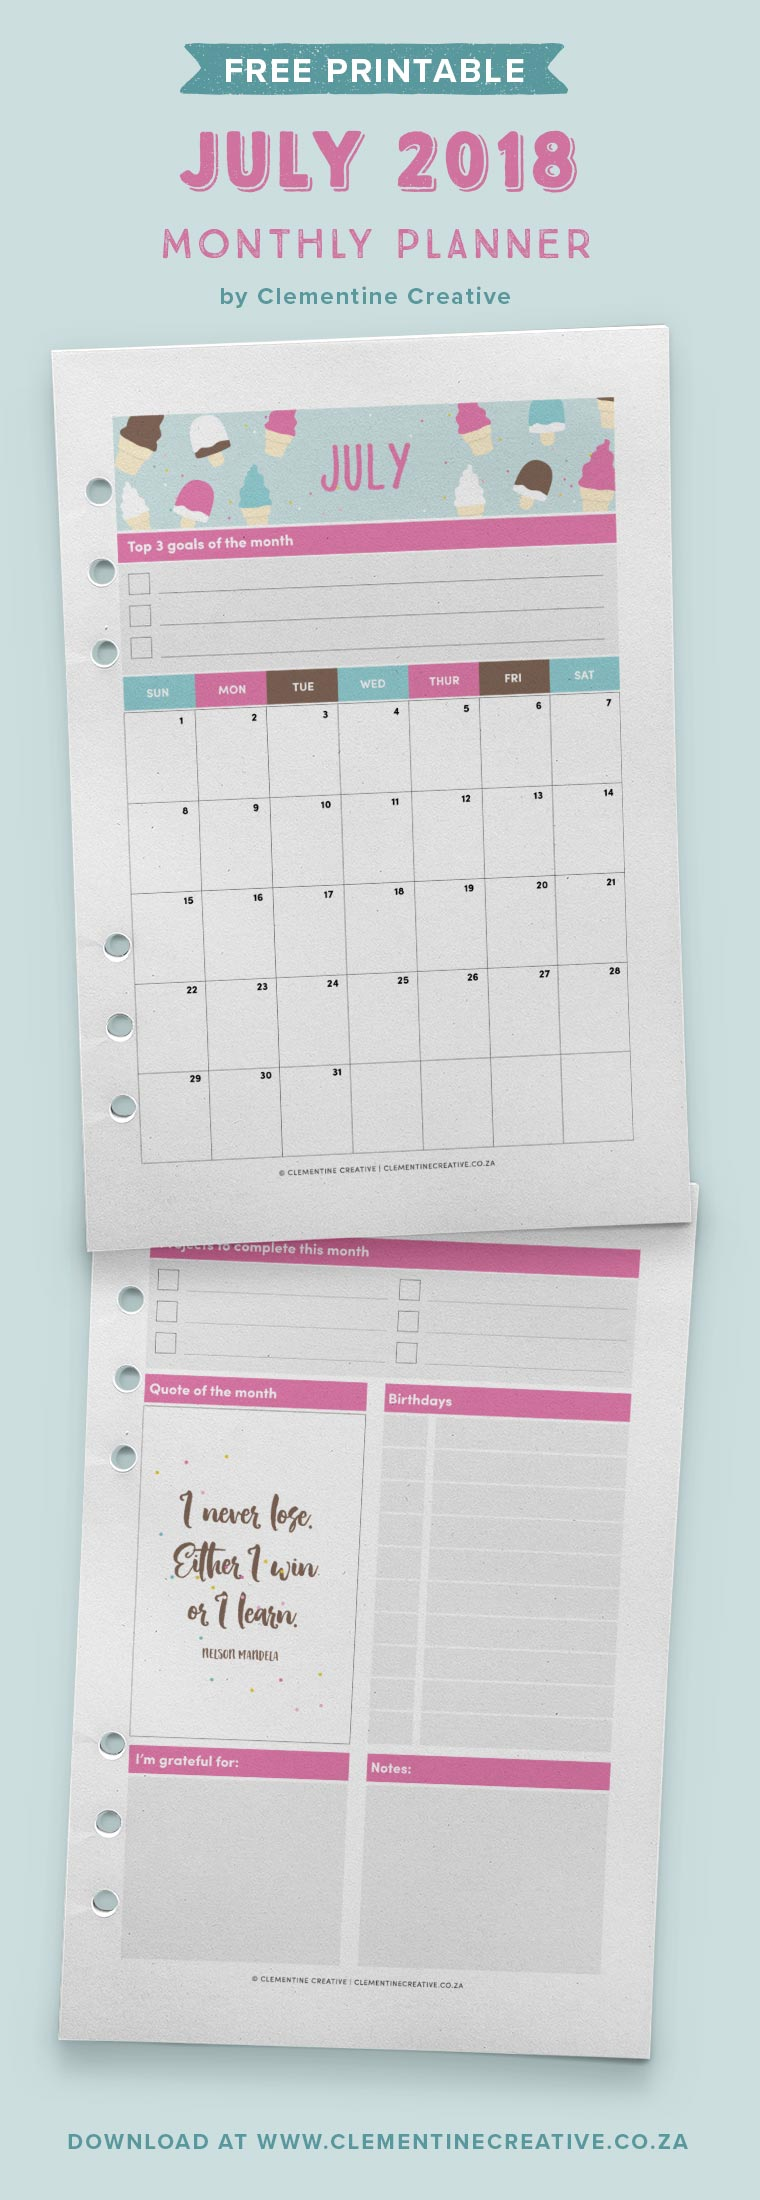 Get planning for July with this free printable July 2018 monthly planner! Click here to join the Clementine Creative club and get it delivered to your inbox.